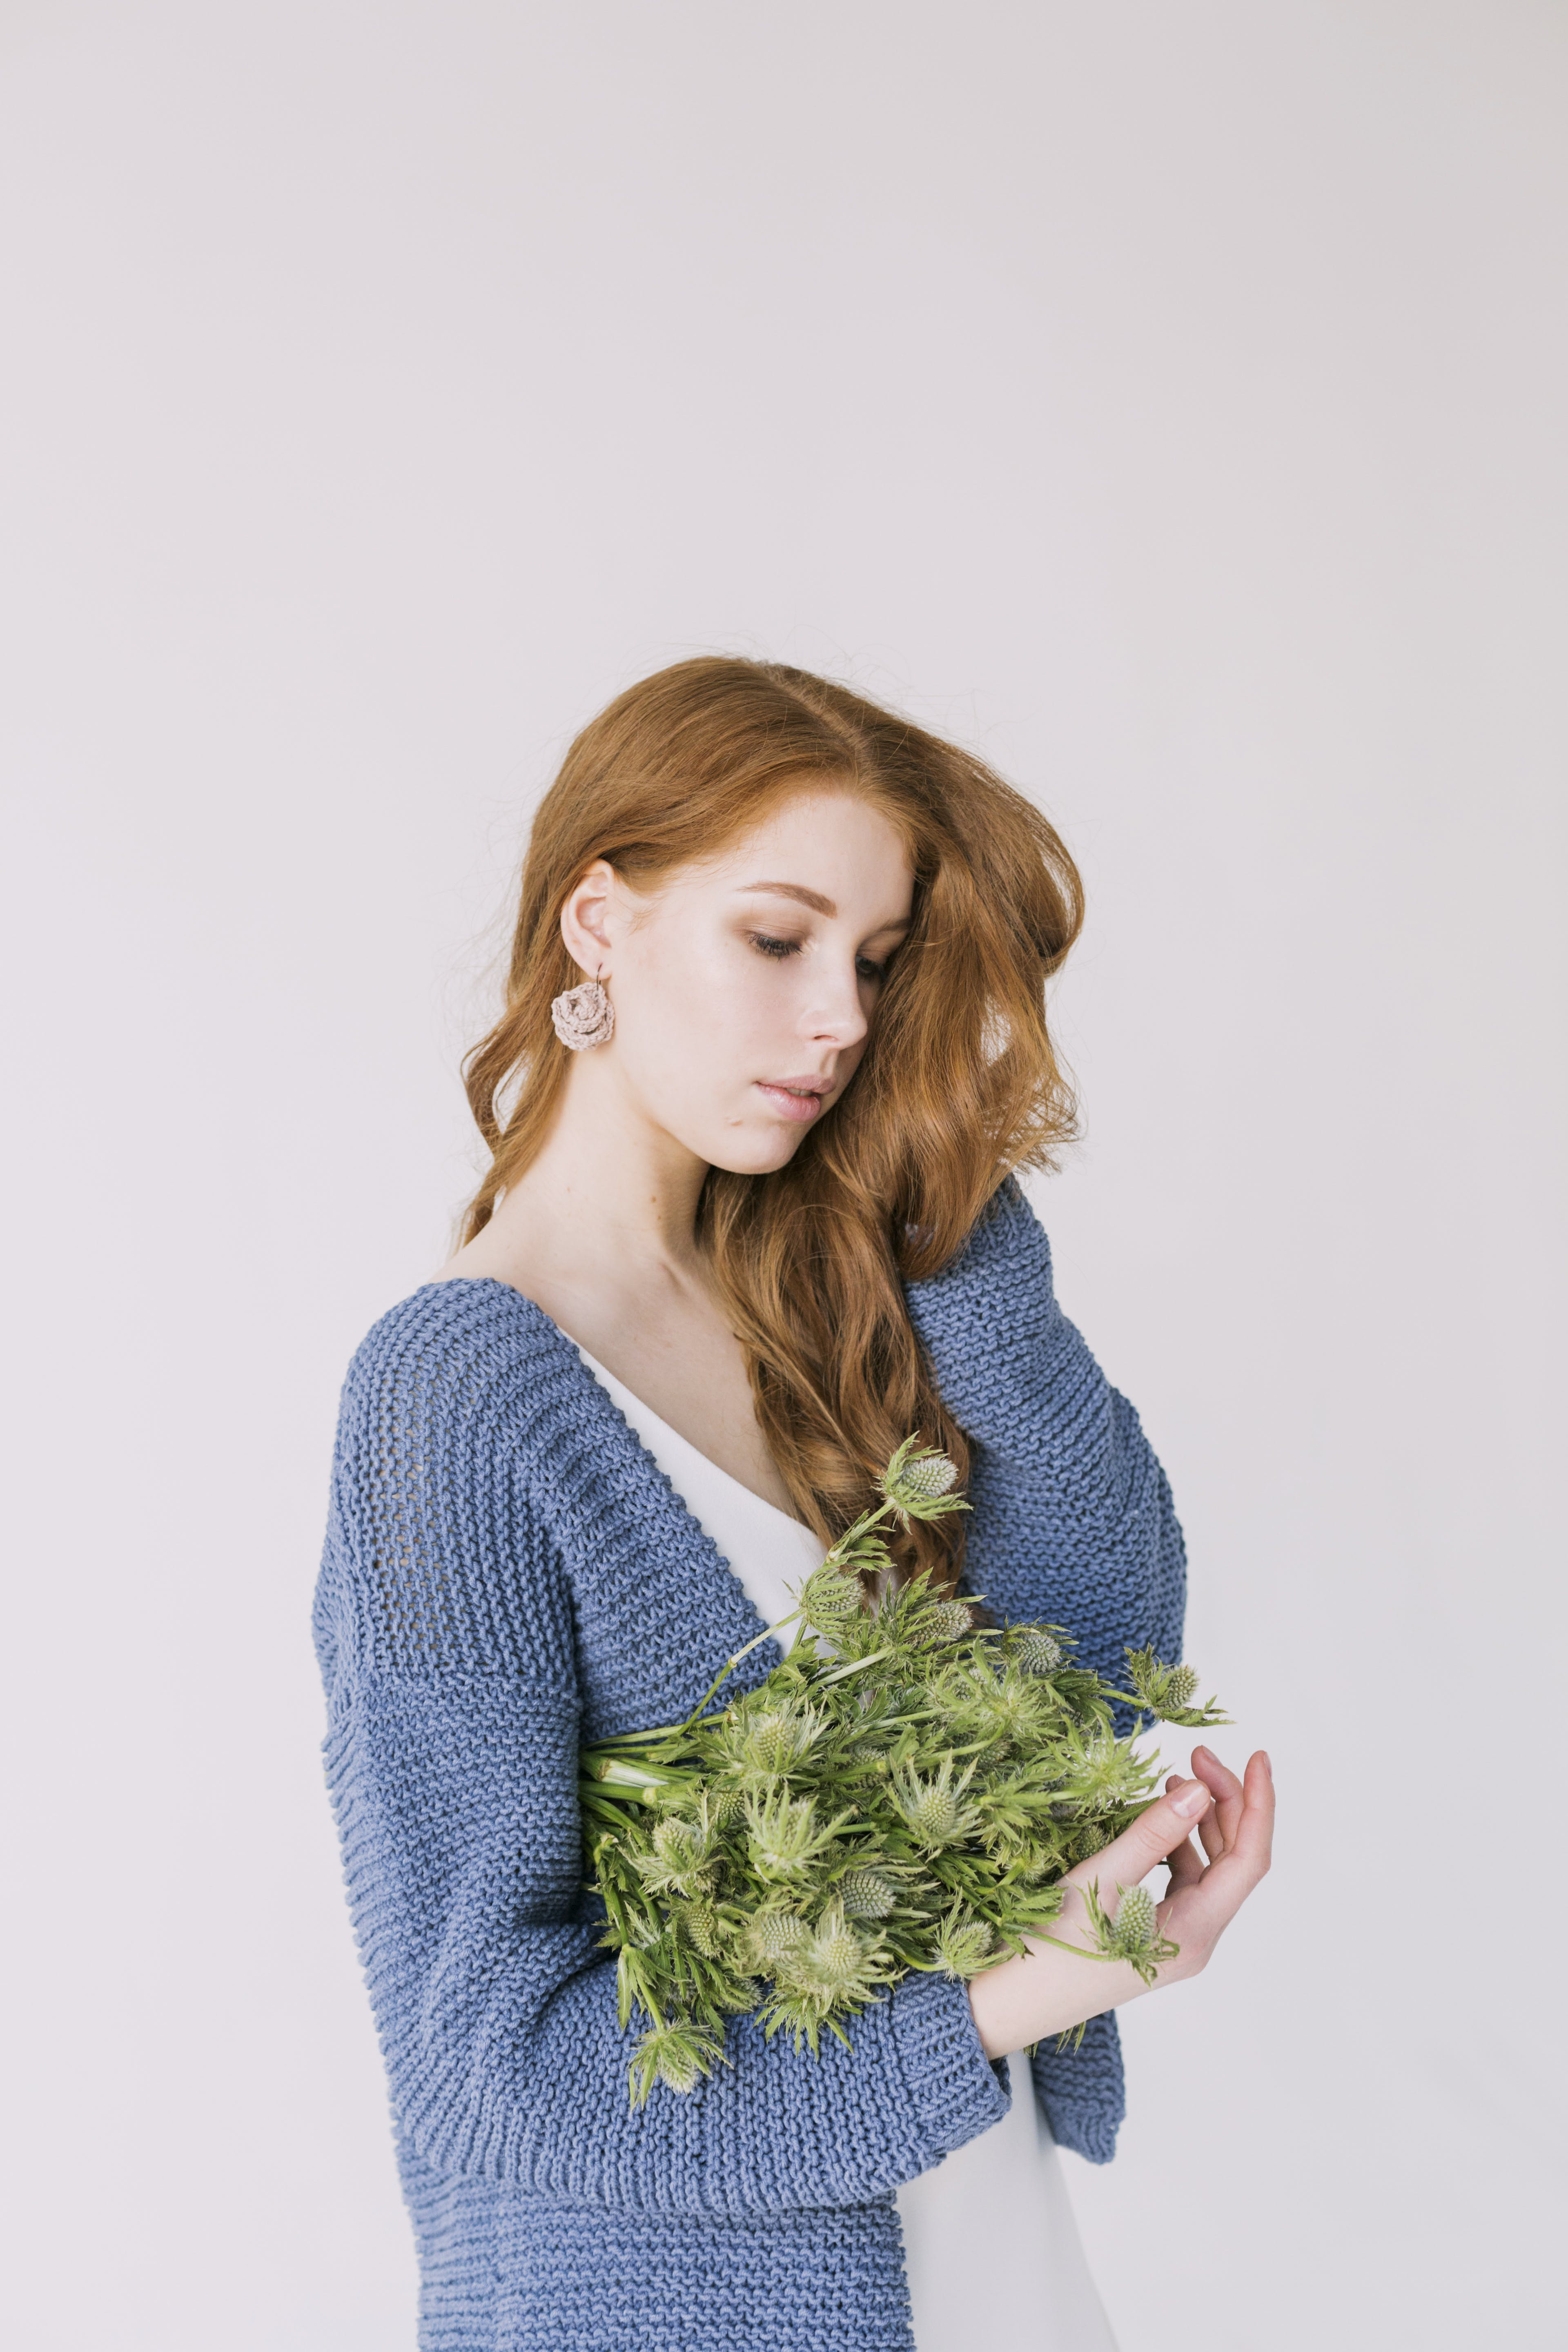 Woman in Blue Cardigan Holding Green Flowers